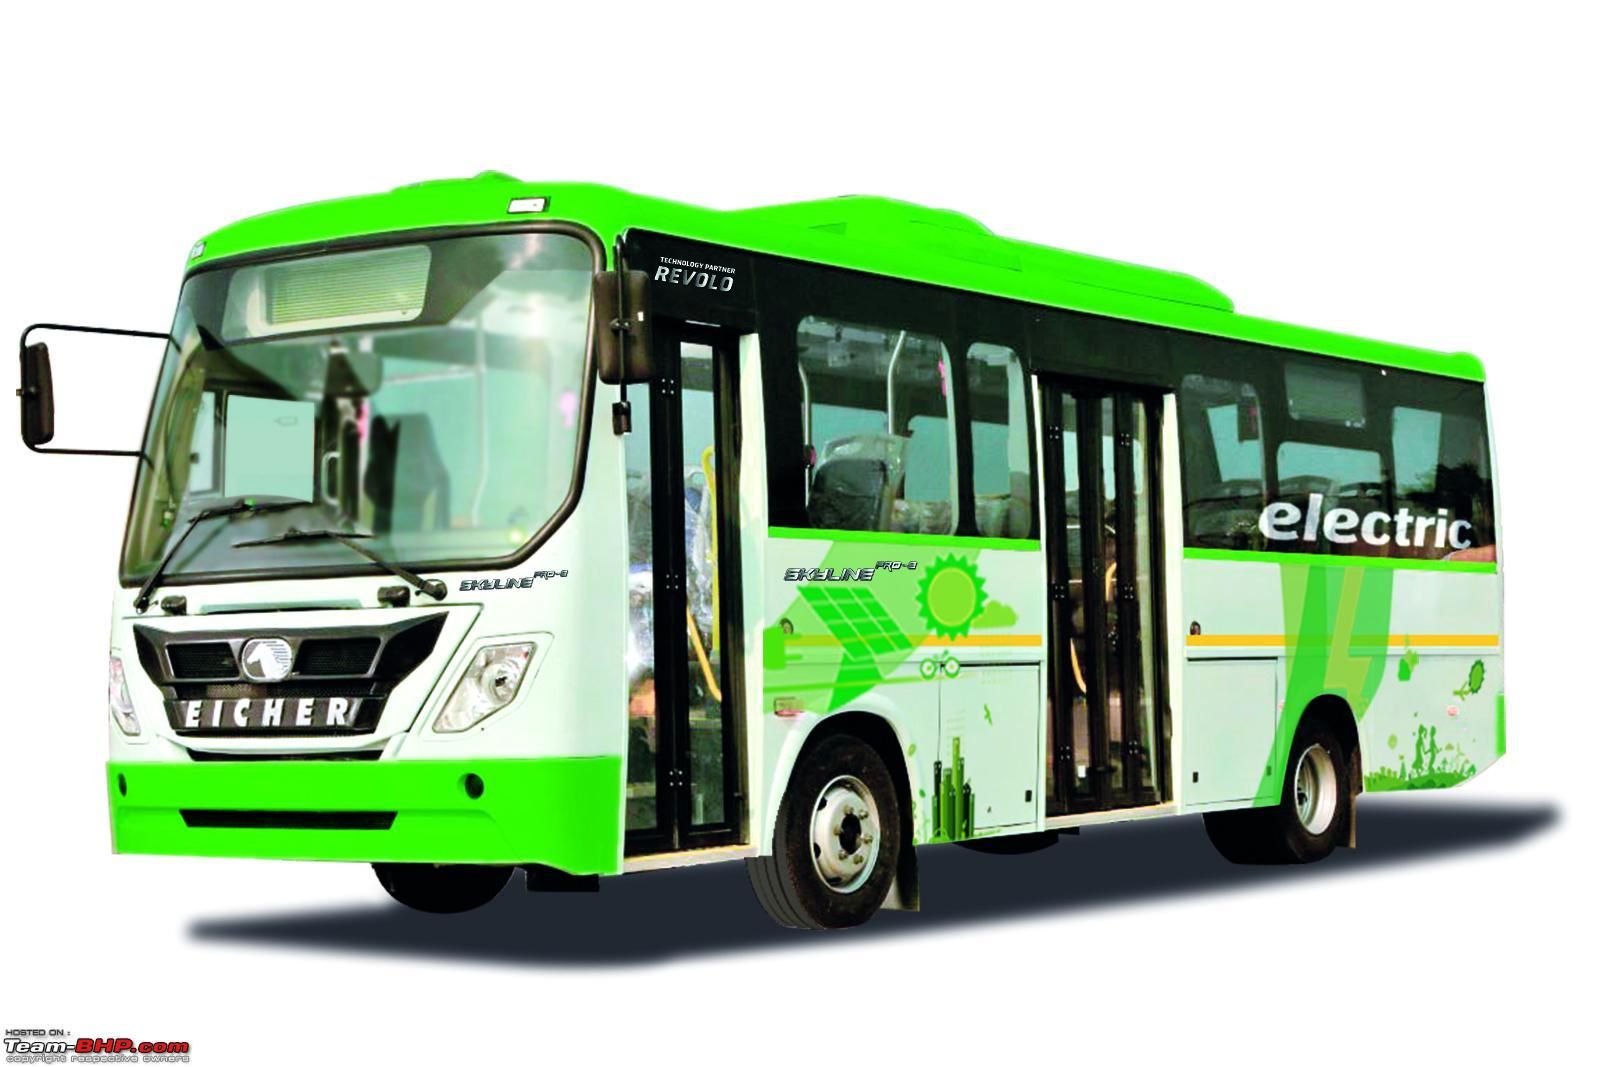 74bf5c4019 EVs won t require permits for commercial use-eicher-electric-bus.